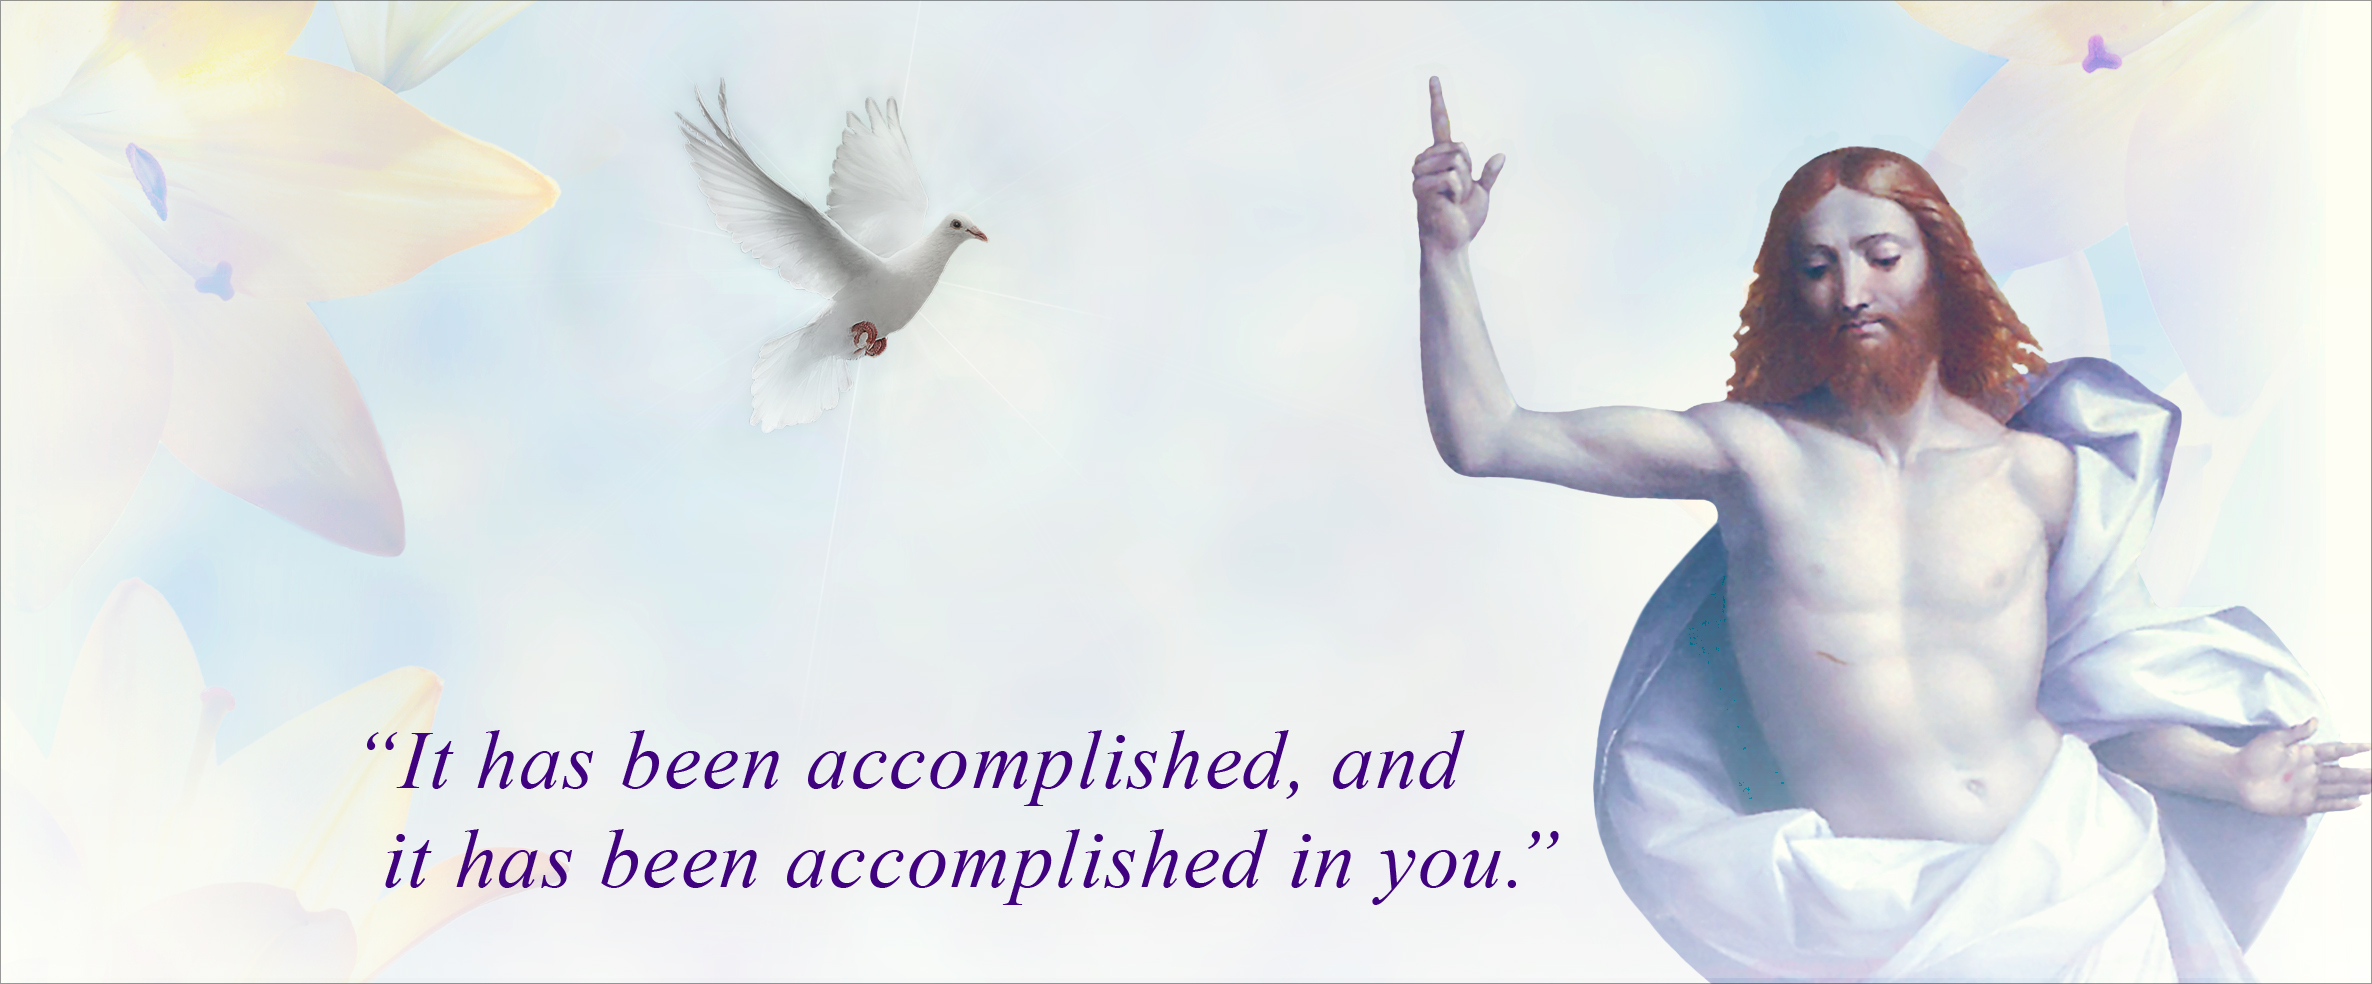 it has been accomplished in you